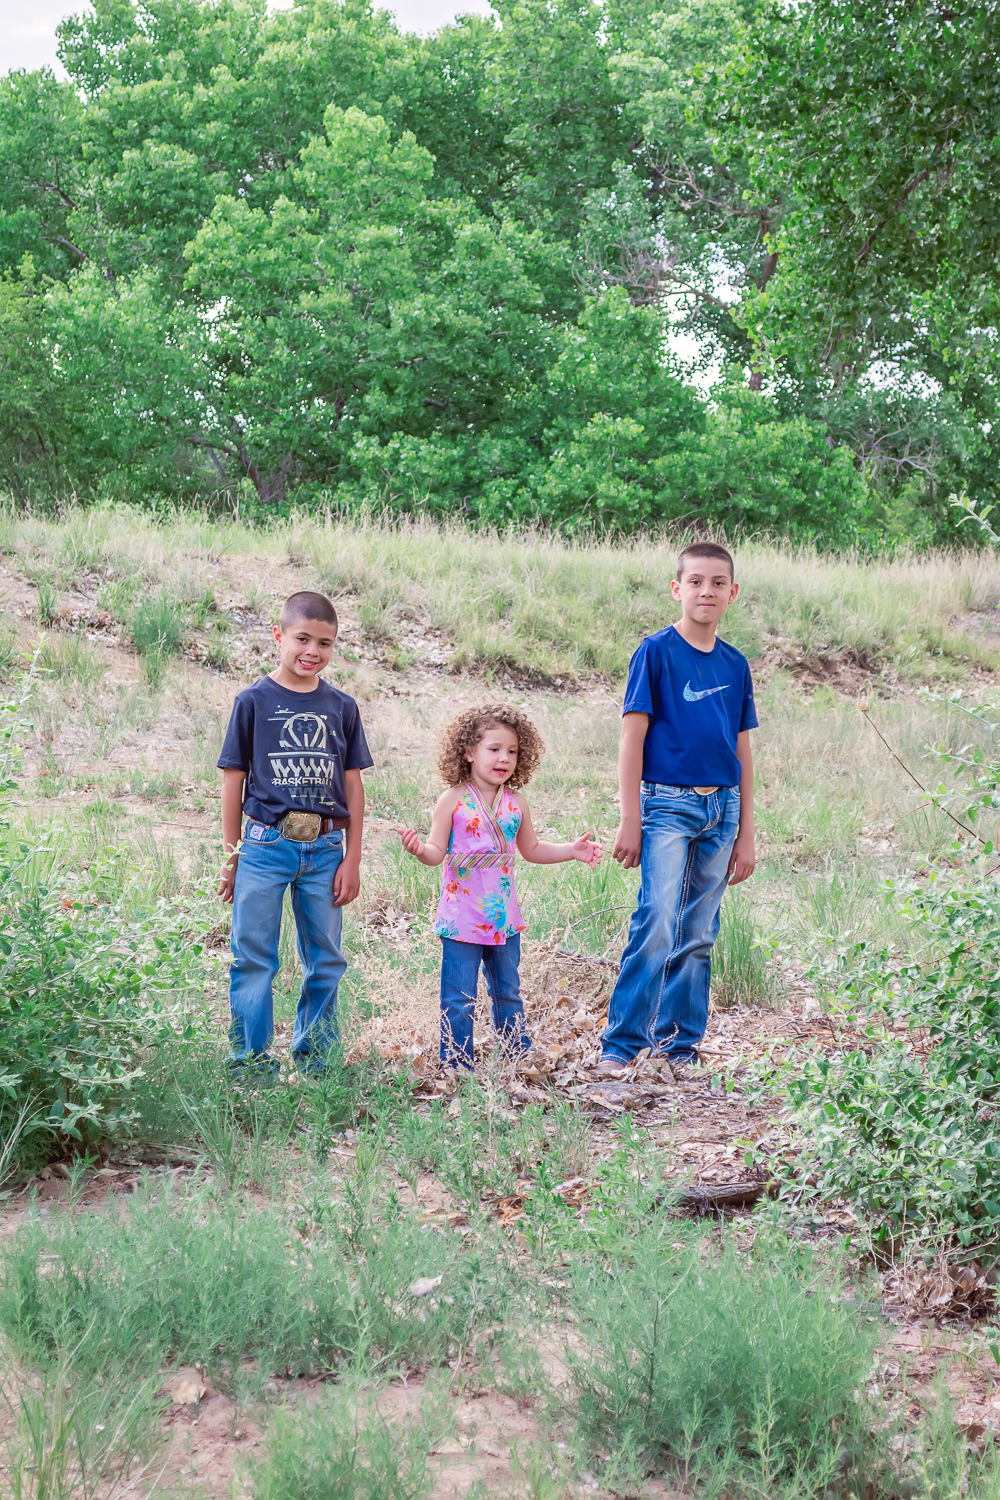 Rio Rancho Family Photographer, Children's Photographer, Rio Rancho, Albuquerque, Santa Fe Family Photographer, Outdoor Family Portraits